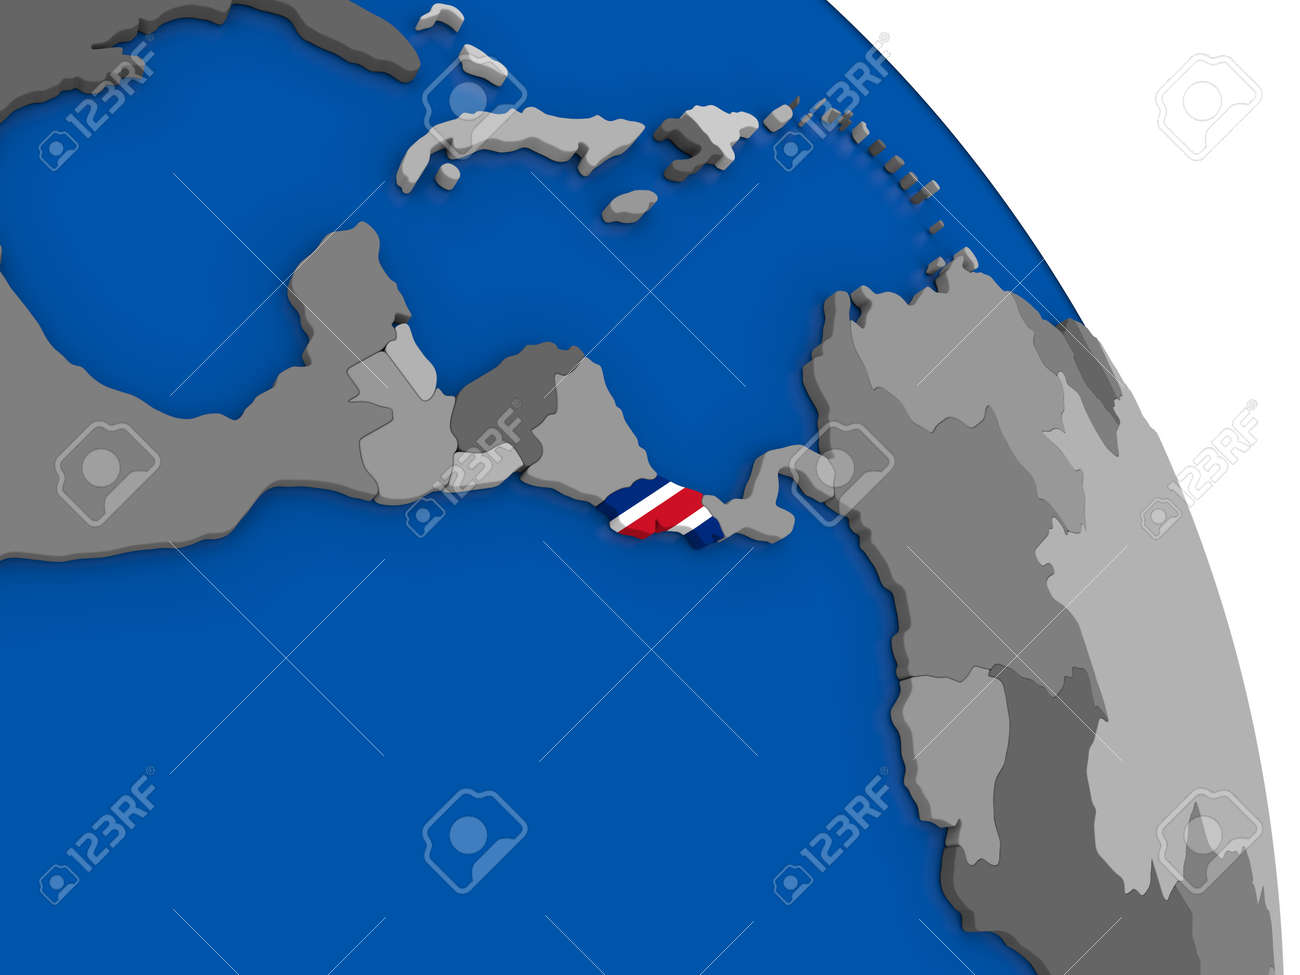 Political Map Costa Rica With National Flag Symbol Embedded Into